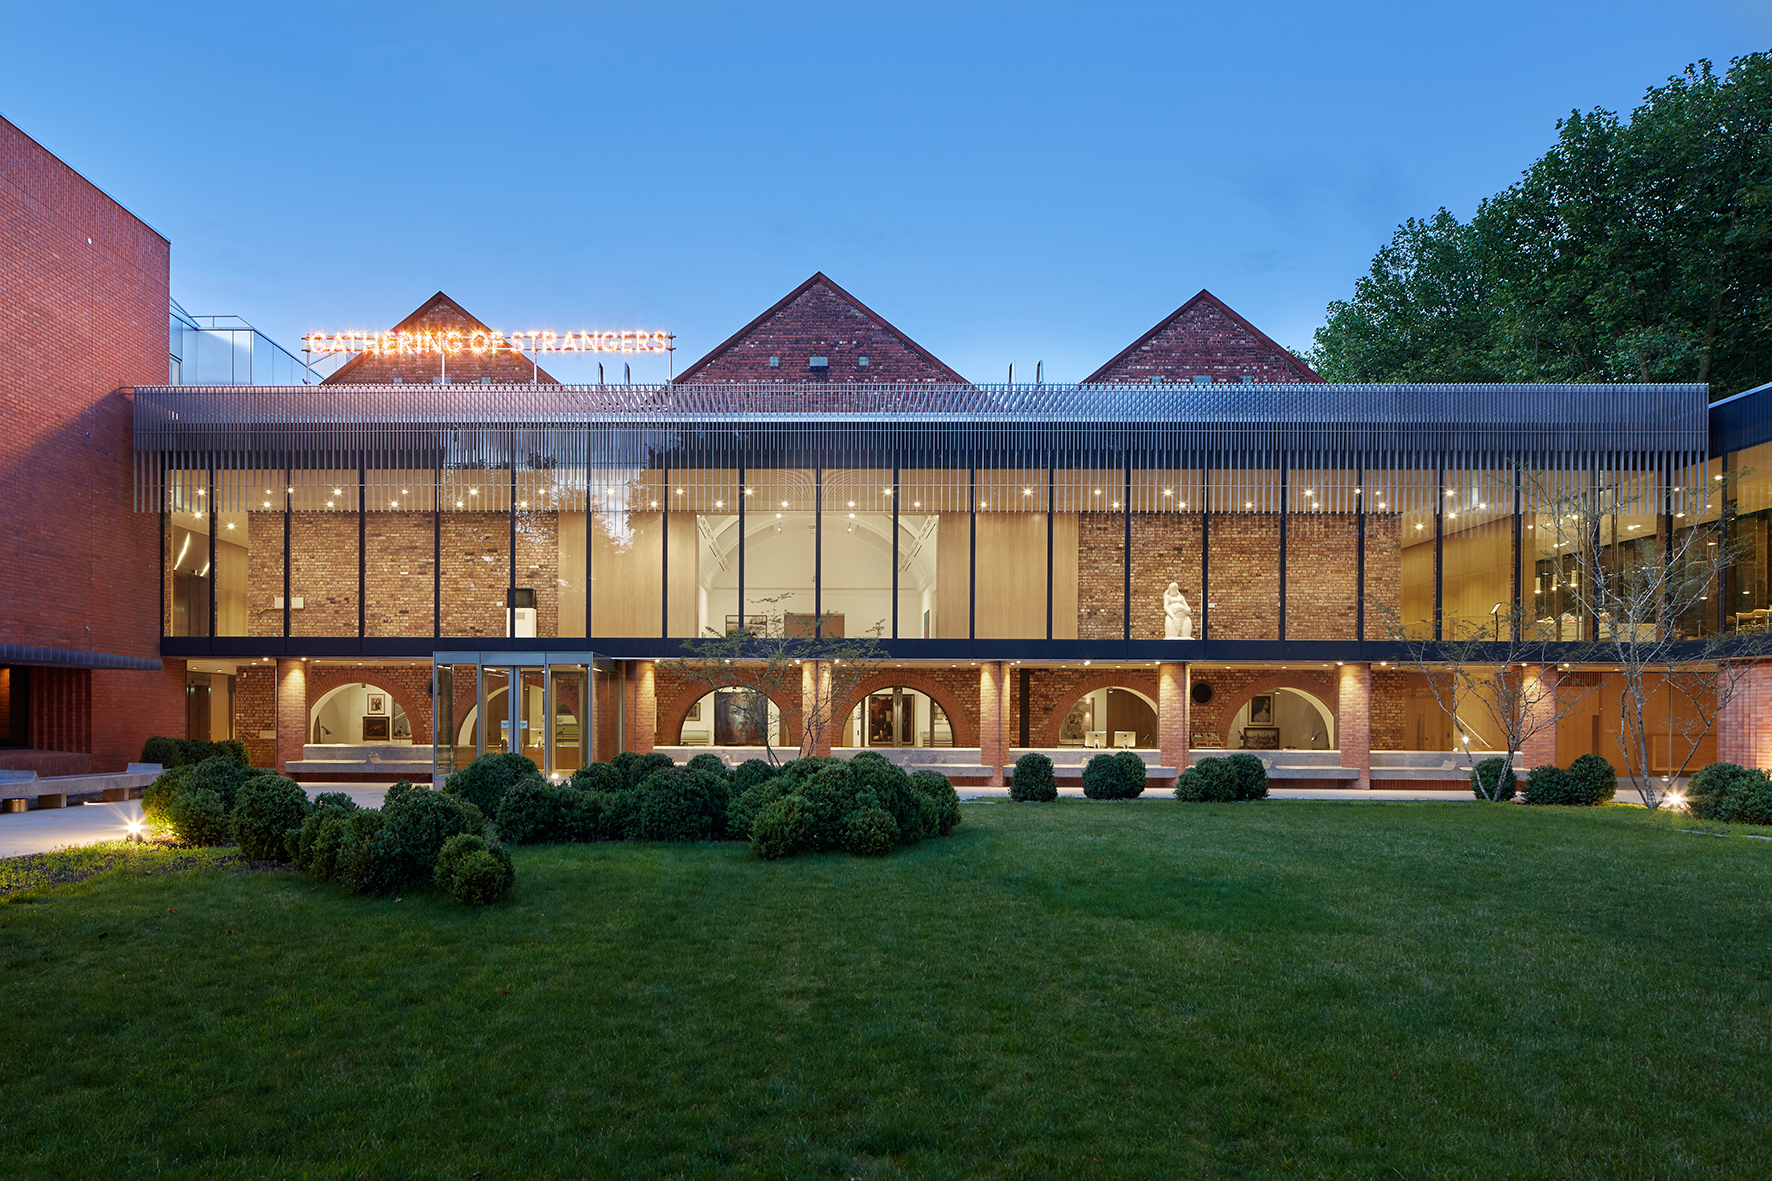 The Whitworth Art Gallery: 21st Century Gallery in the Park